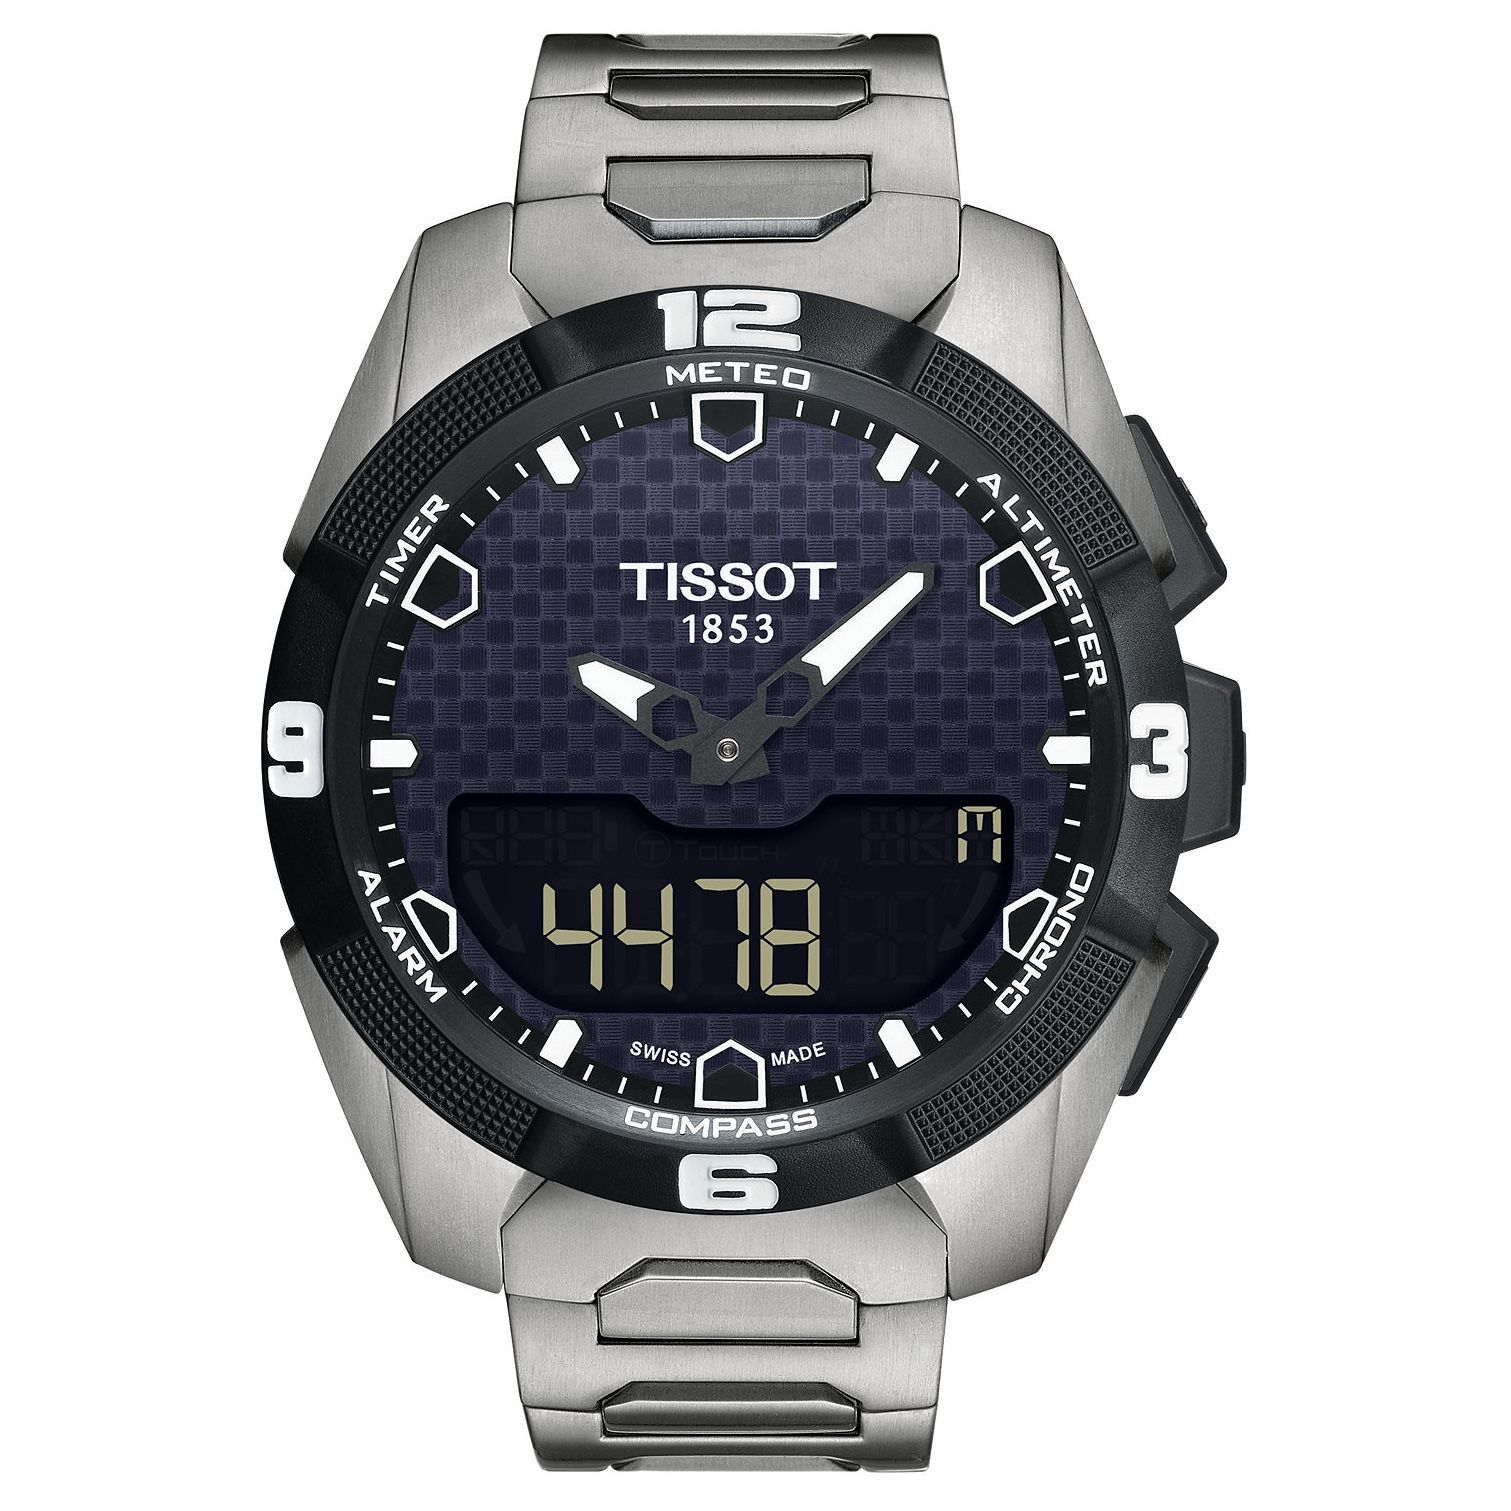 11 Best Digital Watches For Men Mens To Buy In 2019 How Build 9 Second Readout Countdown Timer